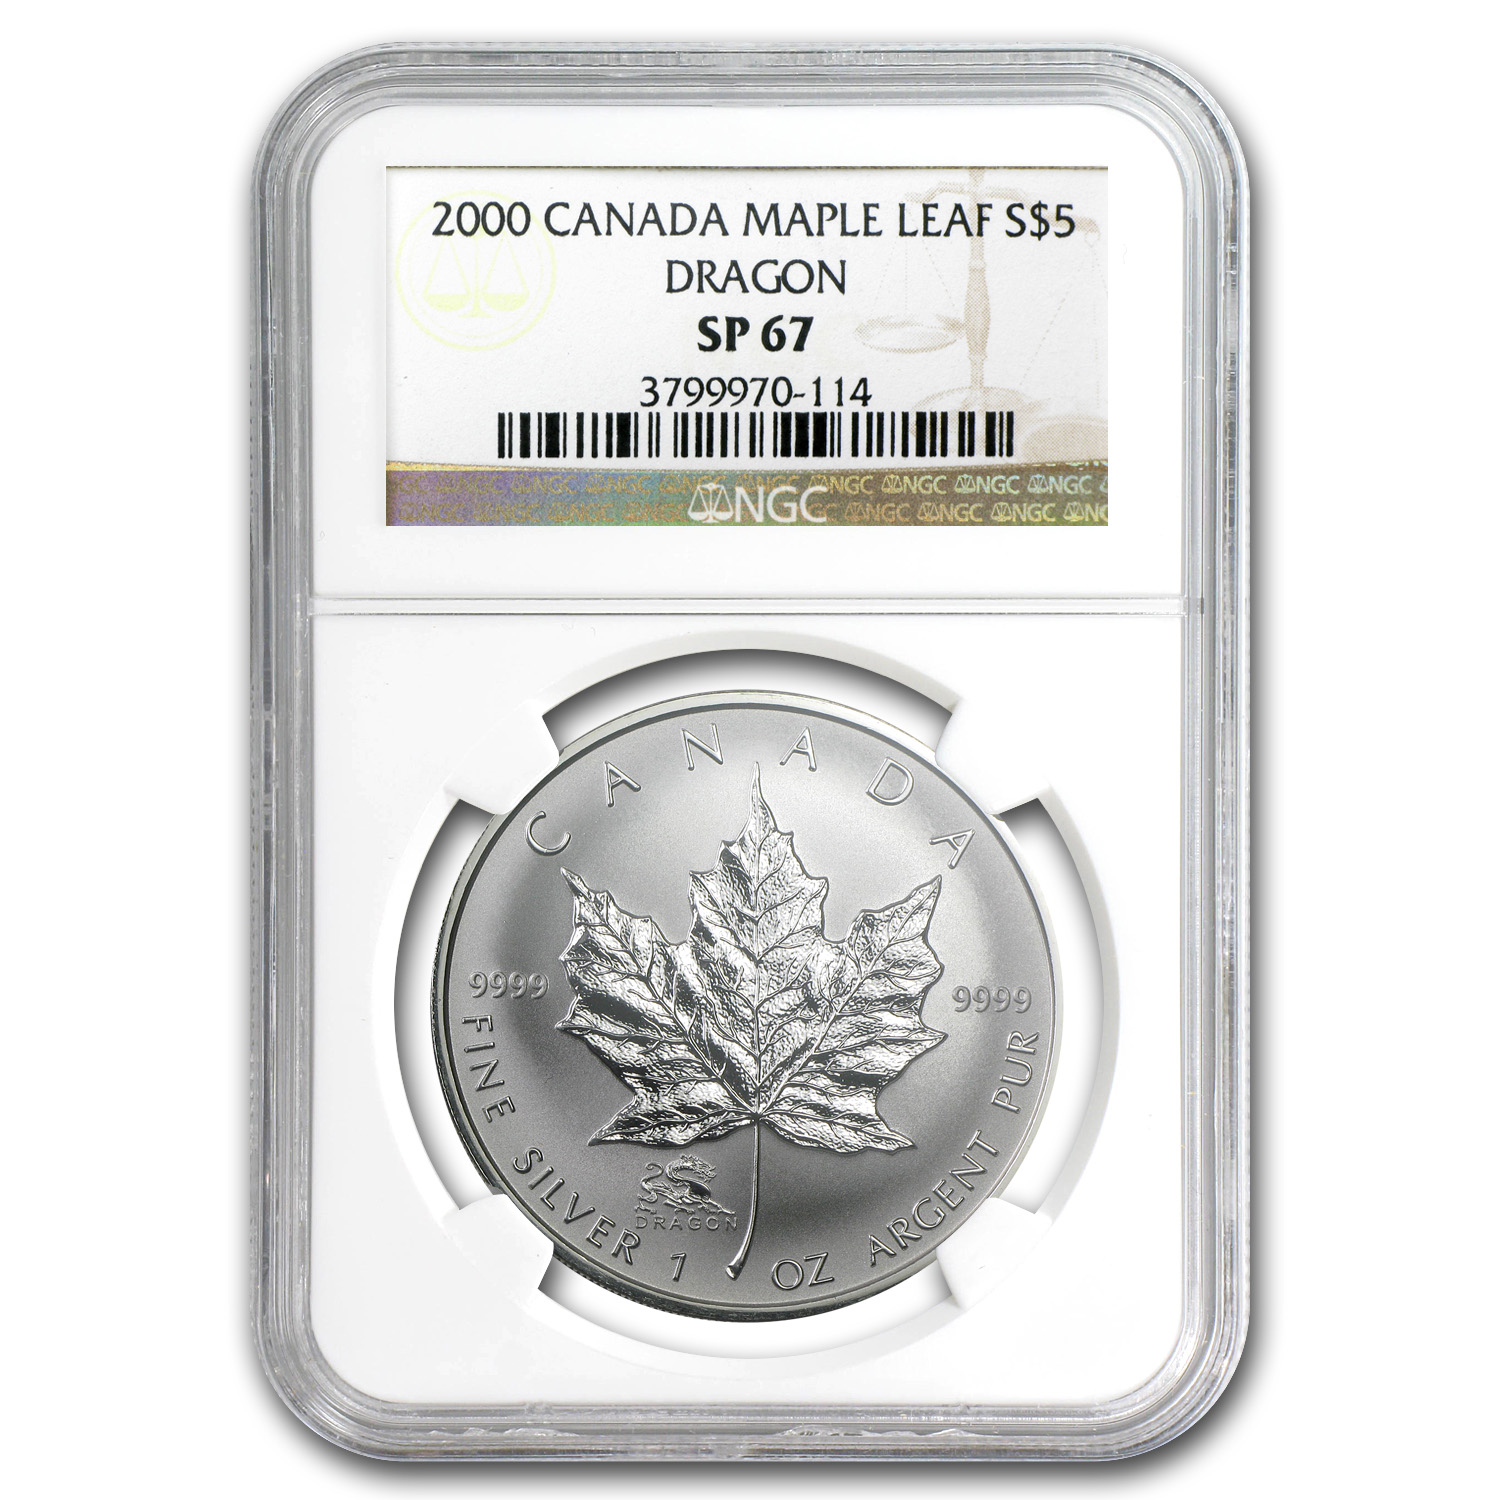 2000 Canada 1 oz Silver Maple Leaf Dragon Privy SP-67 NGC